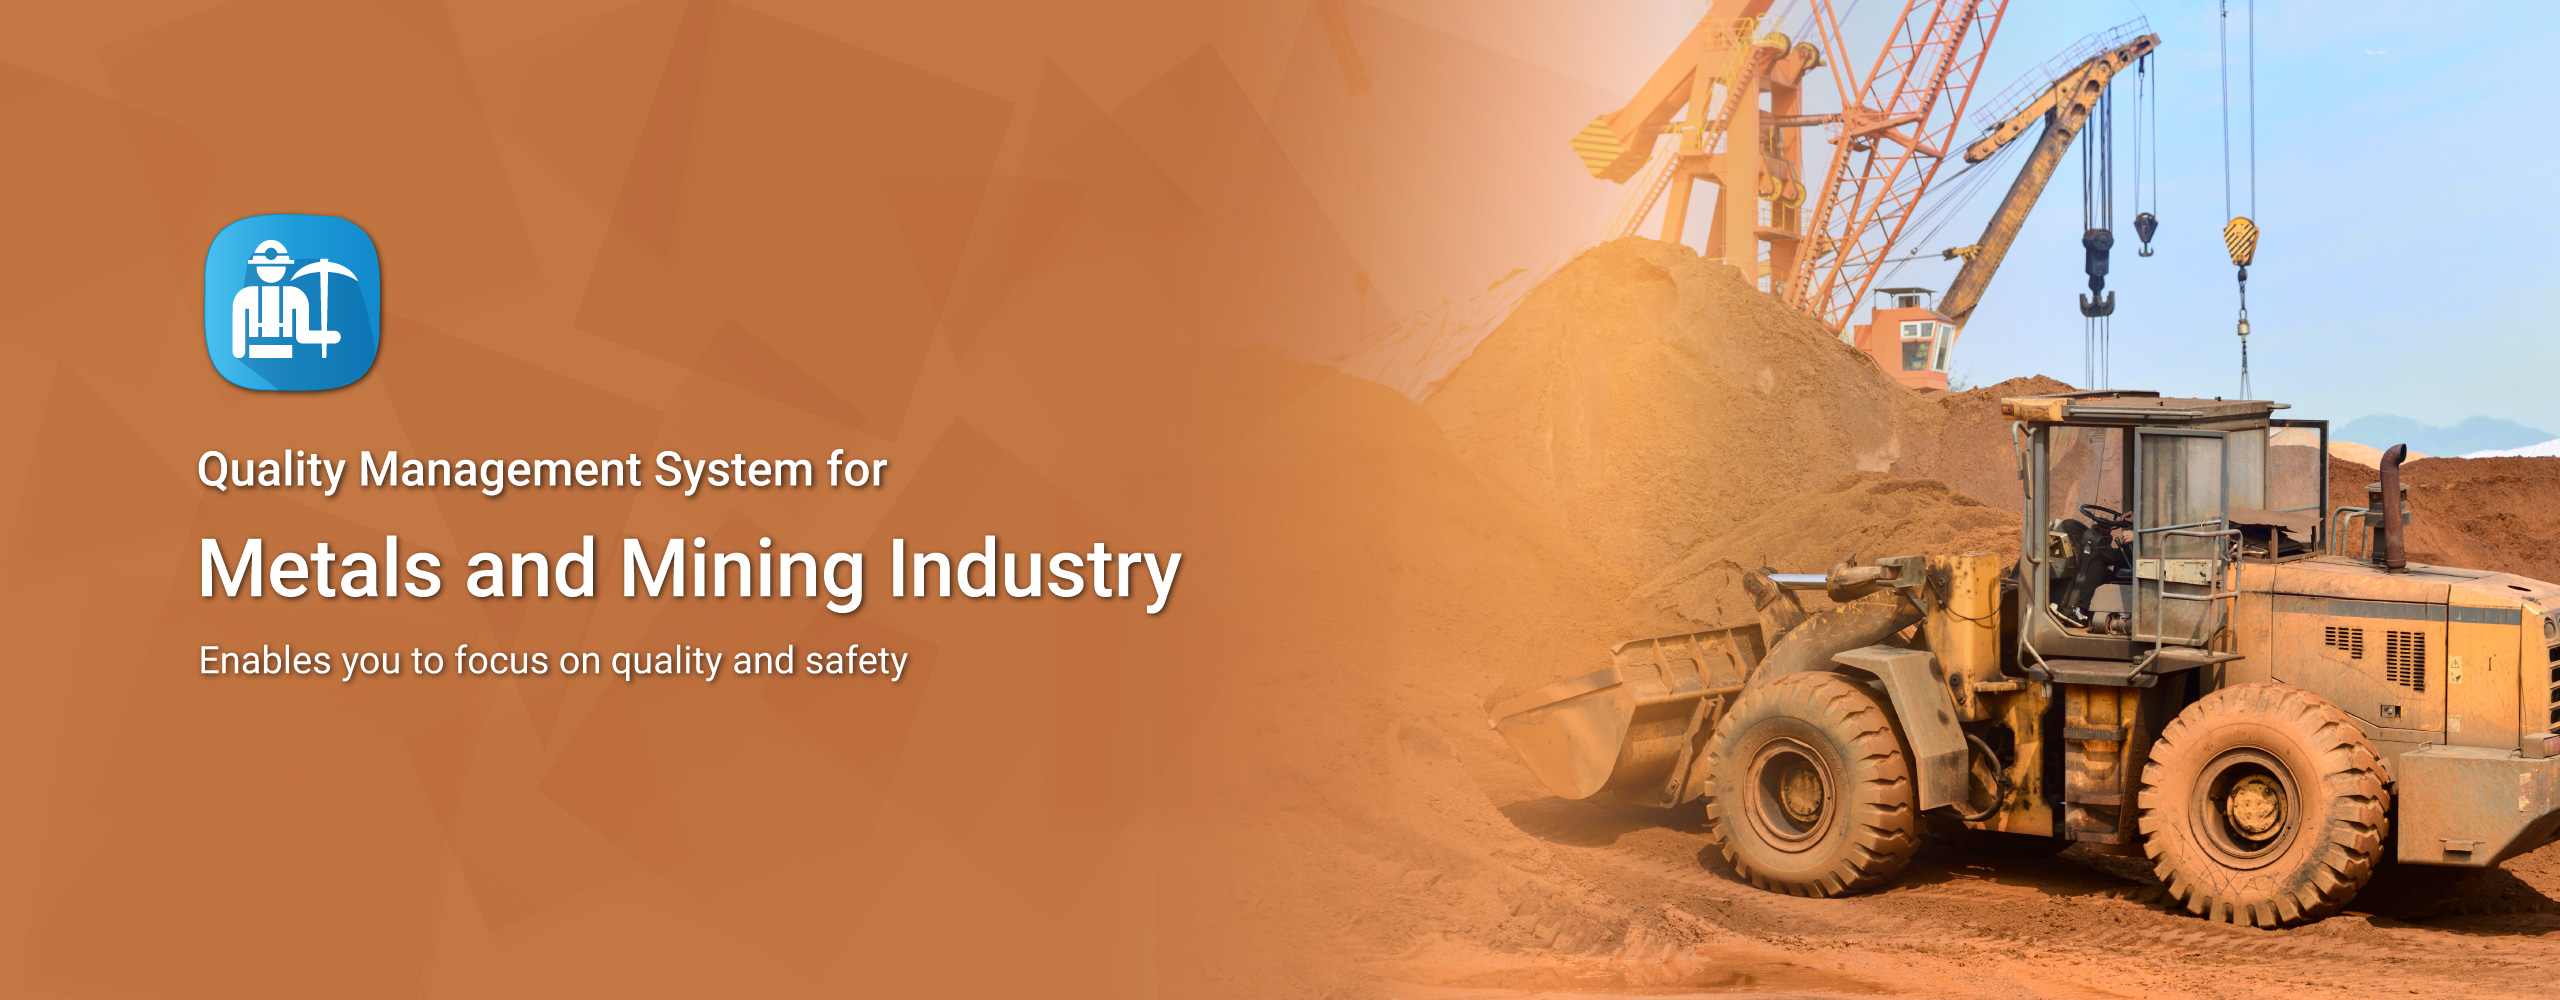 quality management system for metals and mining